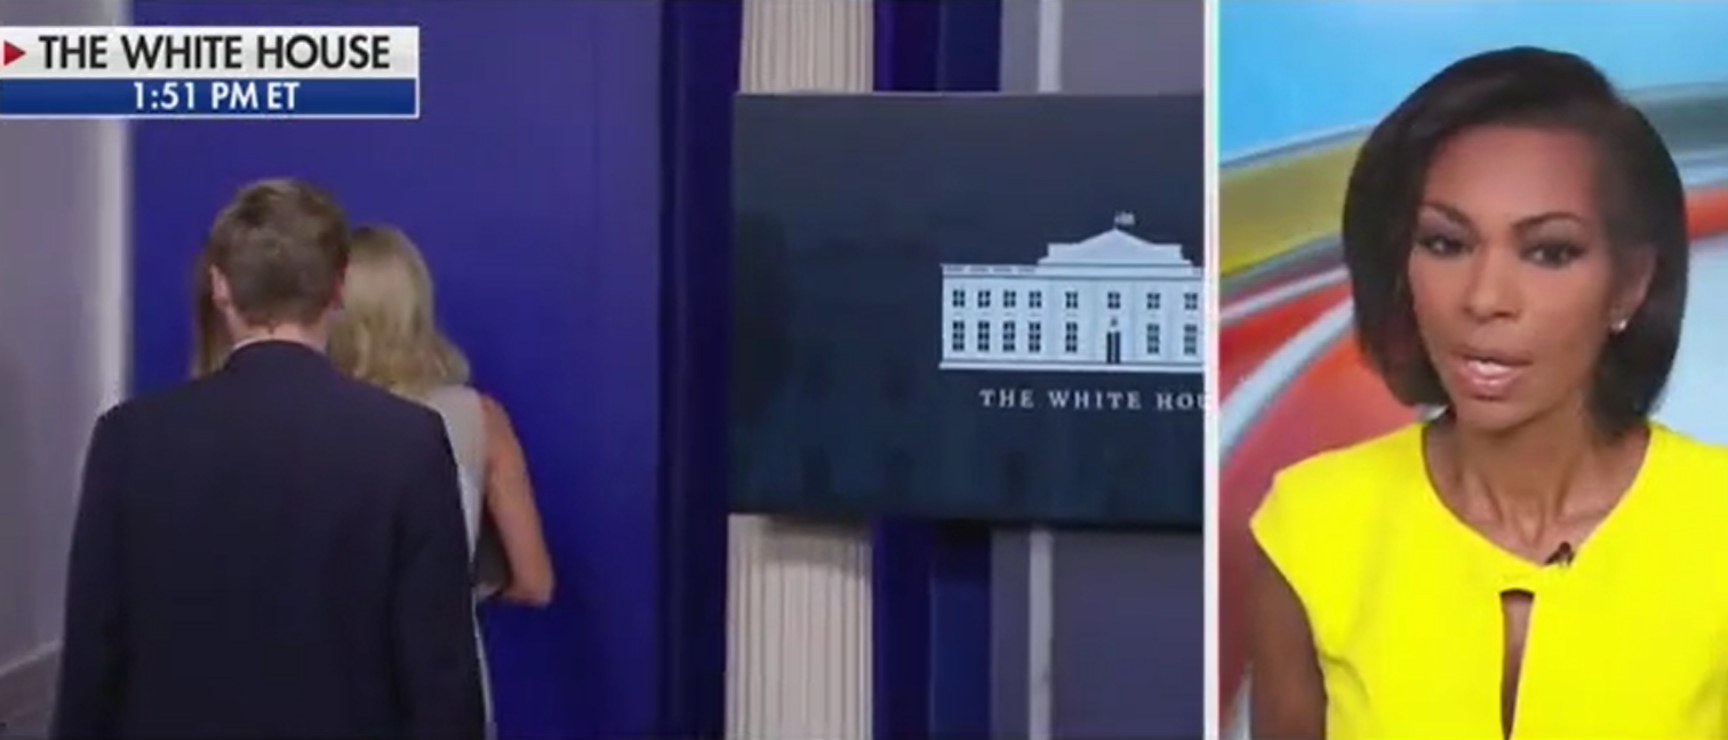 'Well That Was Quite The Mic Drop': Harris Faulkner Reacts After Kayleigh McEnany Scolds Reporters